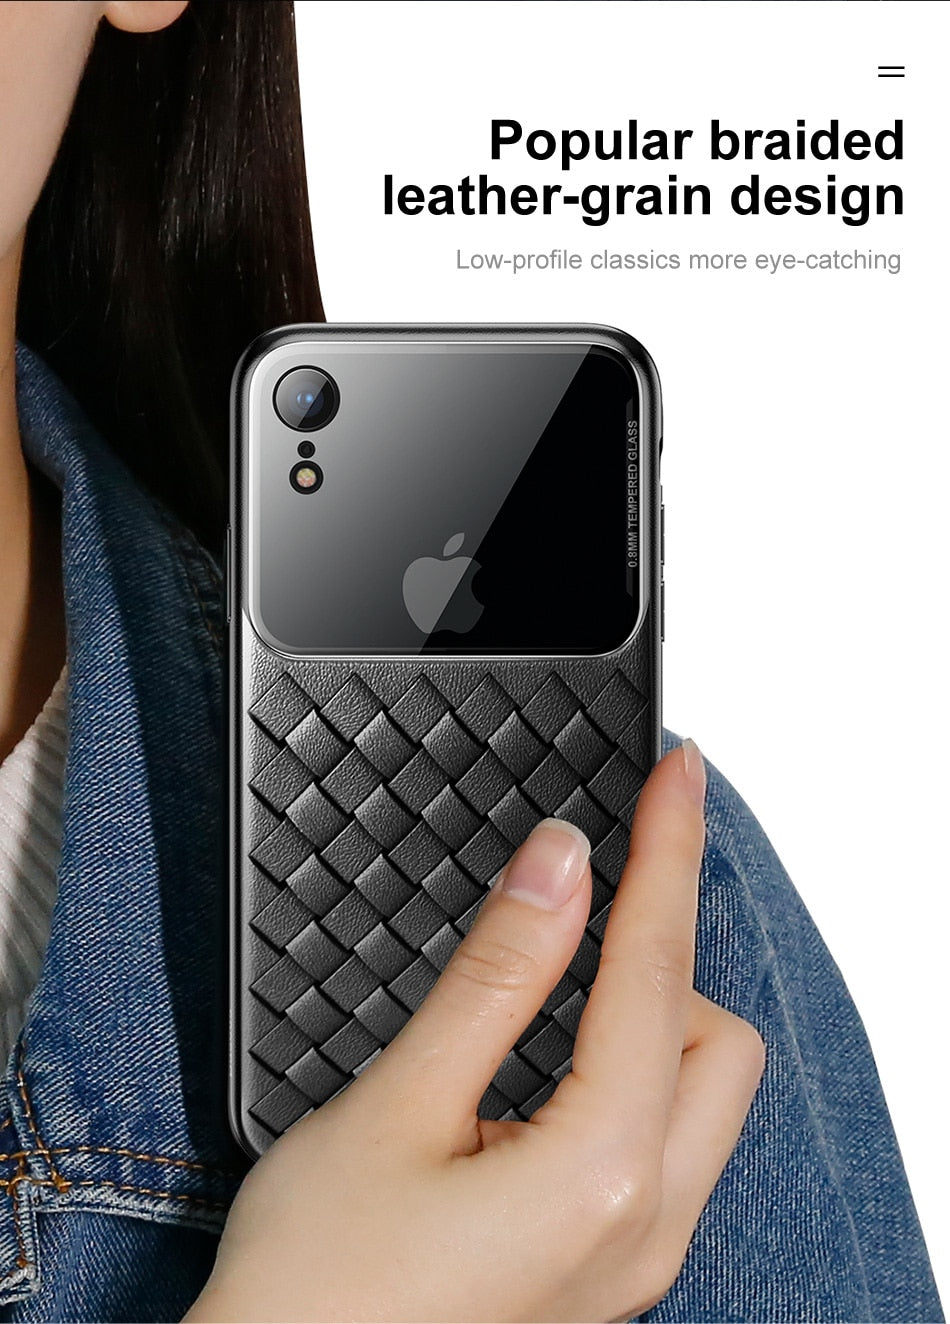 Luxury Smooth & Glossy Camera Lens Plus Weave Design Soft TPU Back Case Cover of Apple iPhone XS Max